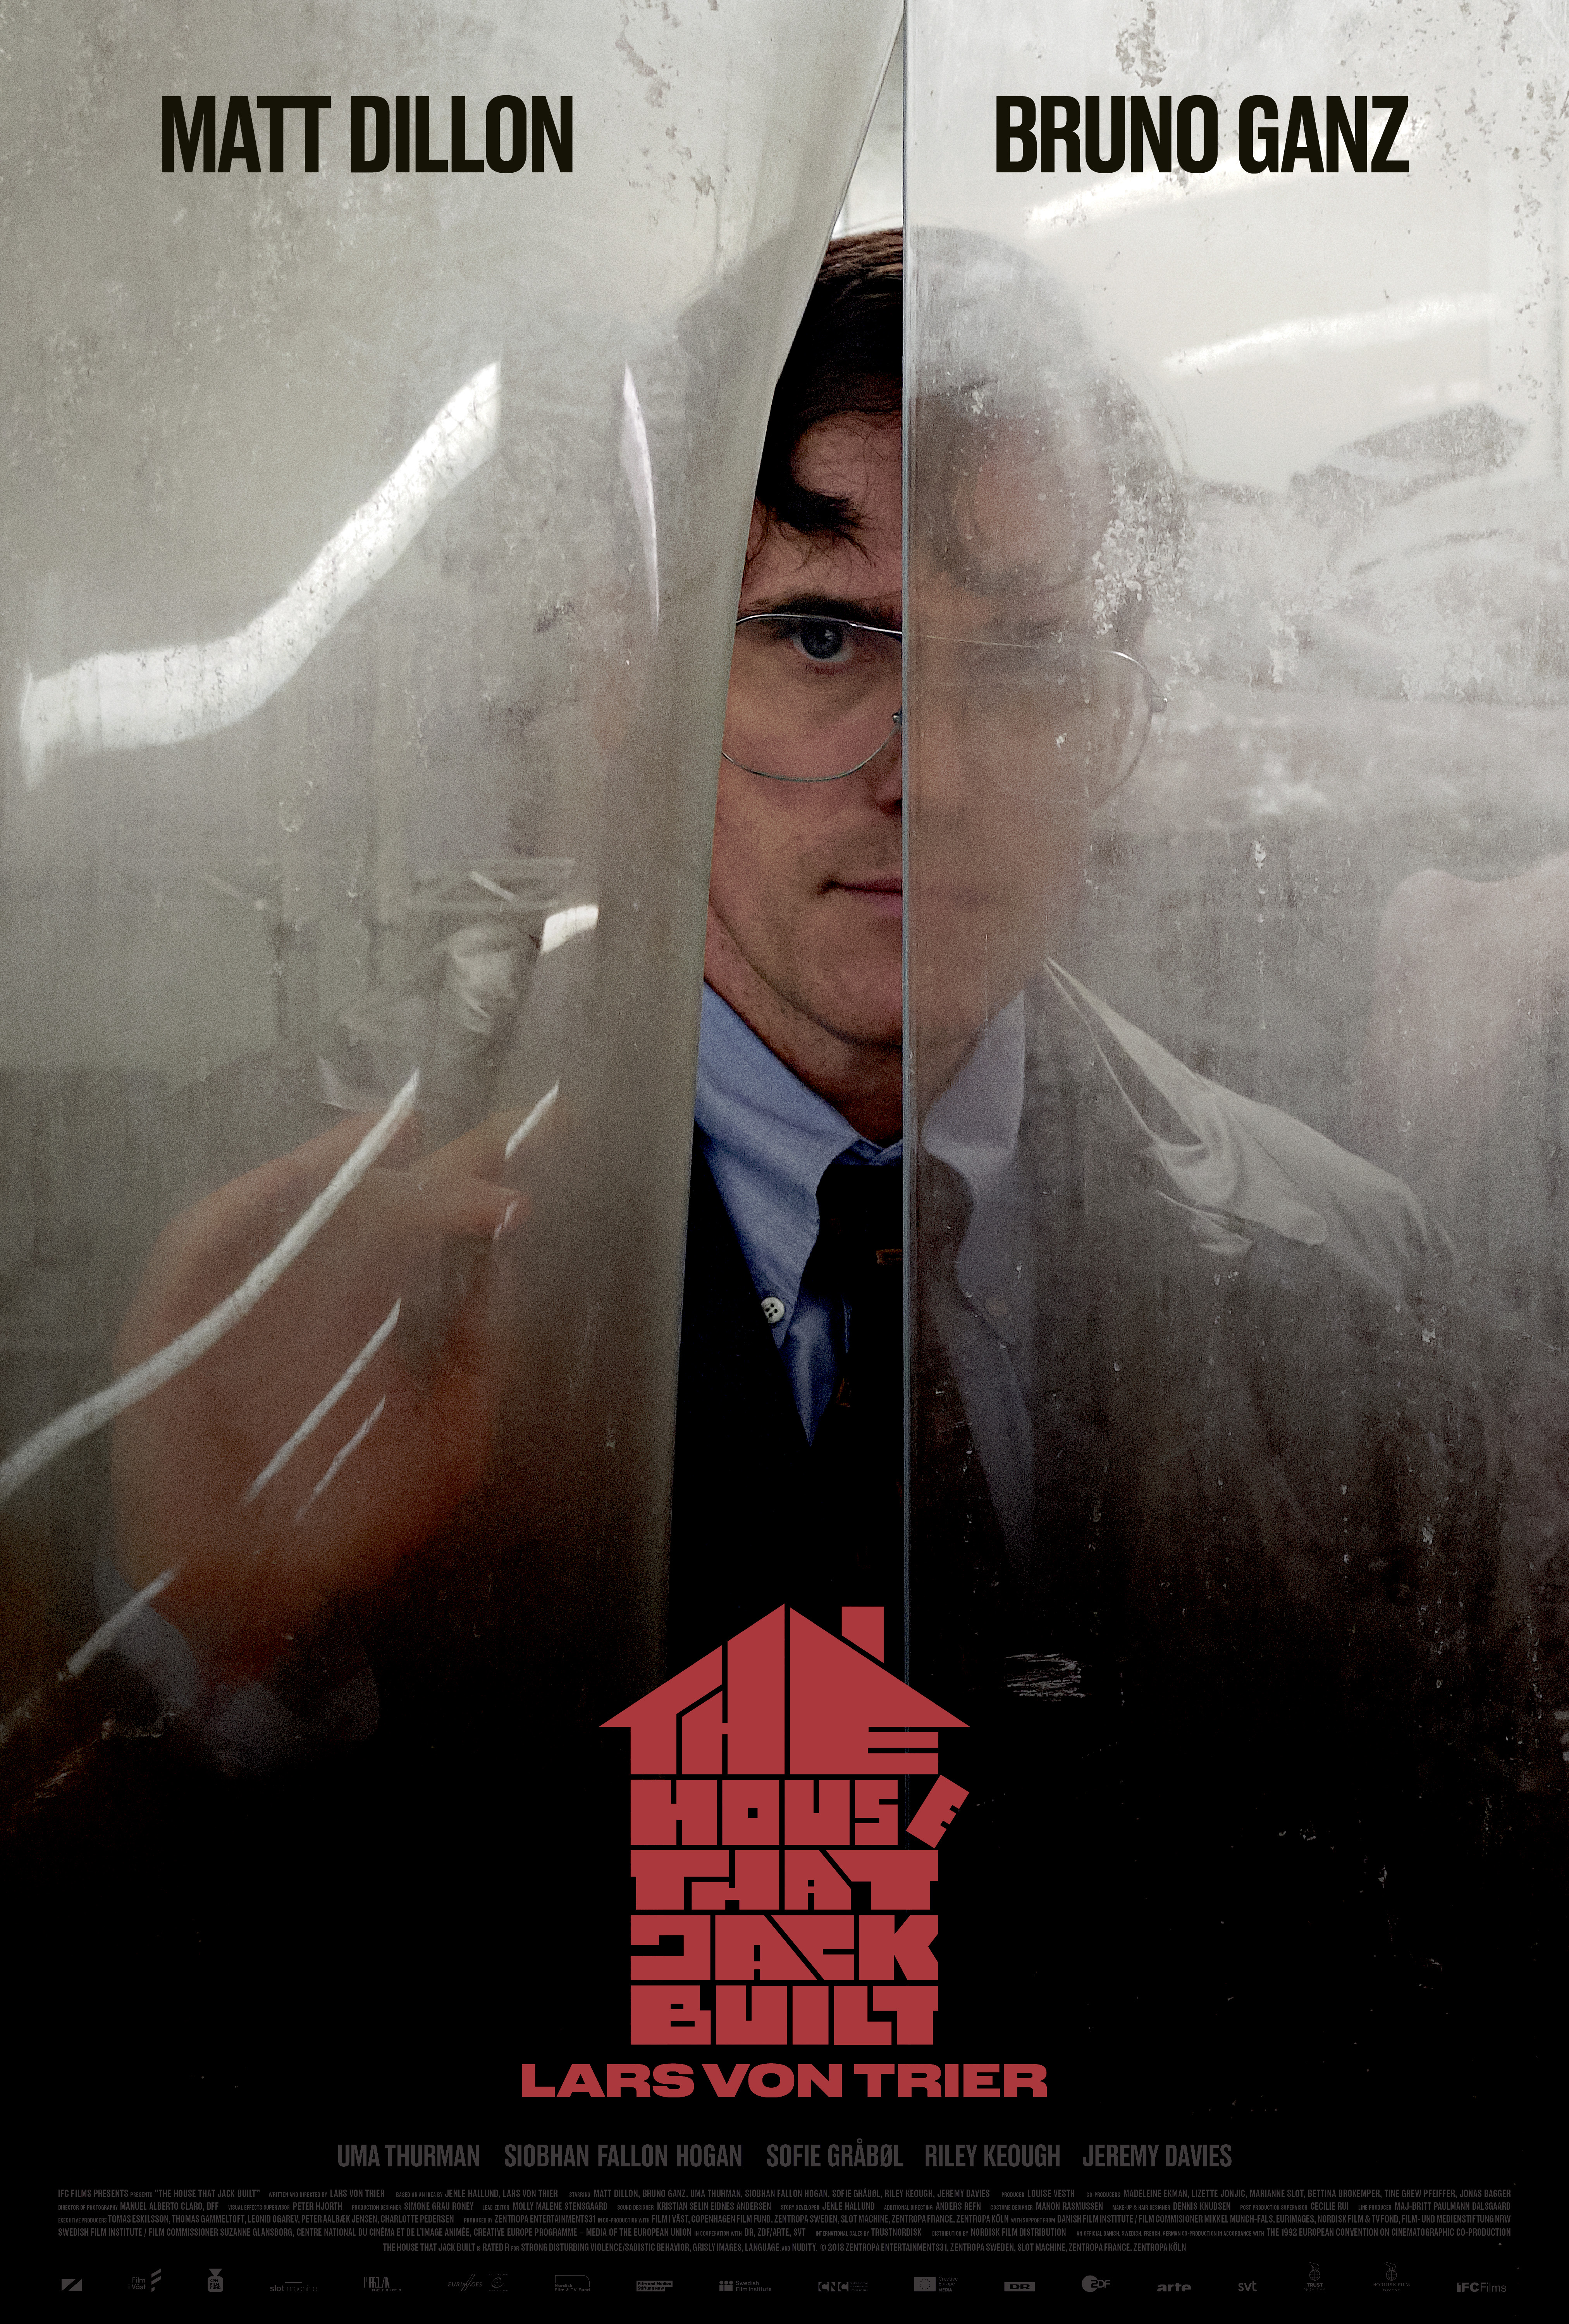 NAMAS, KURĮ PASTATĖ DŽEKAS (2018) / THE HOUSE THAT JACK BUILT